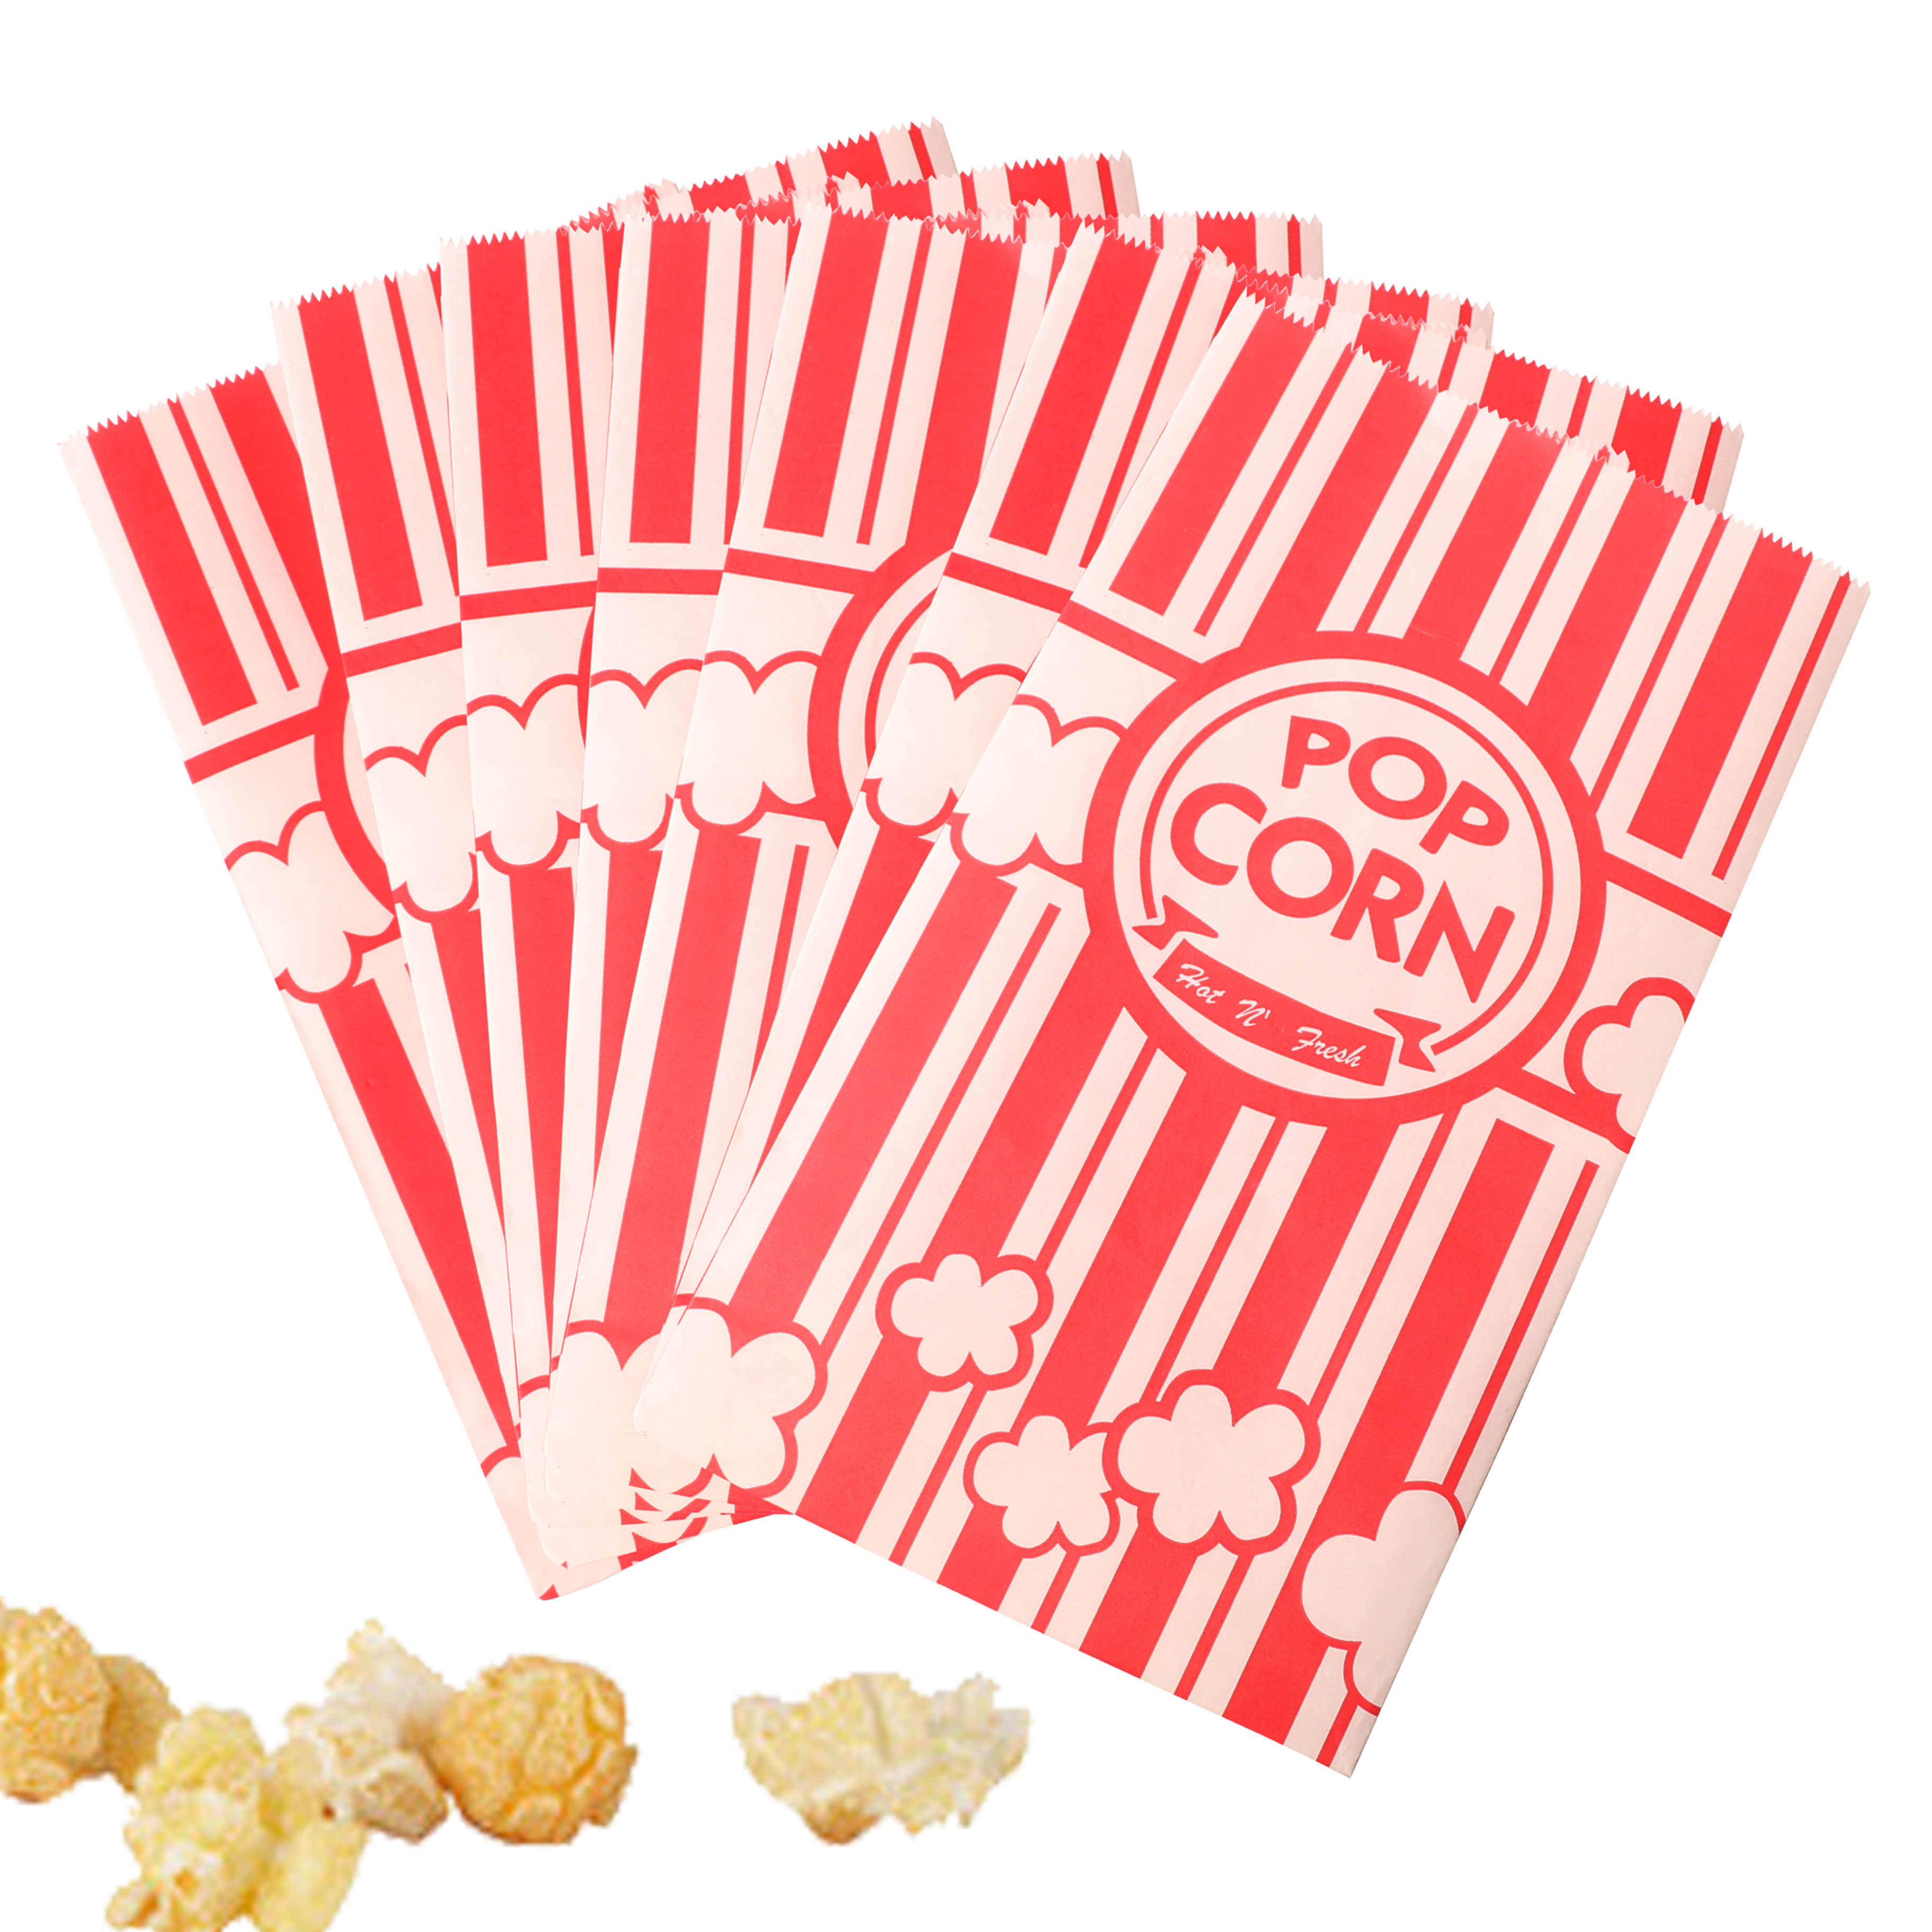 Fun Express Cardboard Unicorn Popcorn Boxes 24-Pack Great for Unicorn-Themed Parties//Movie Nights